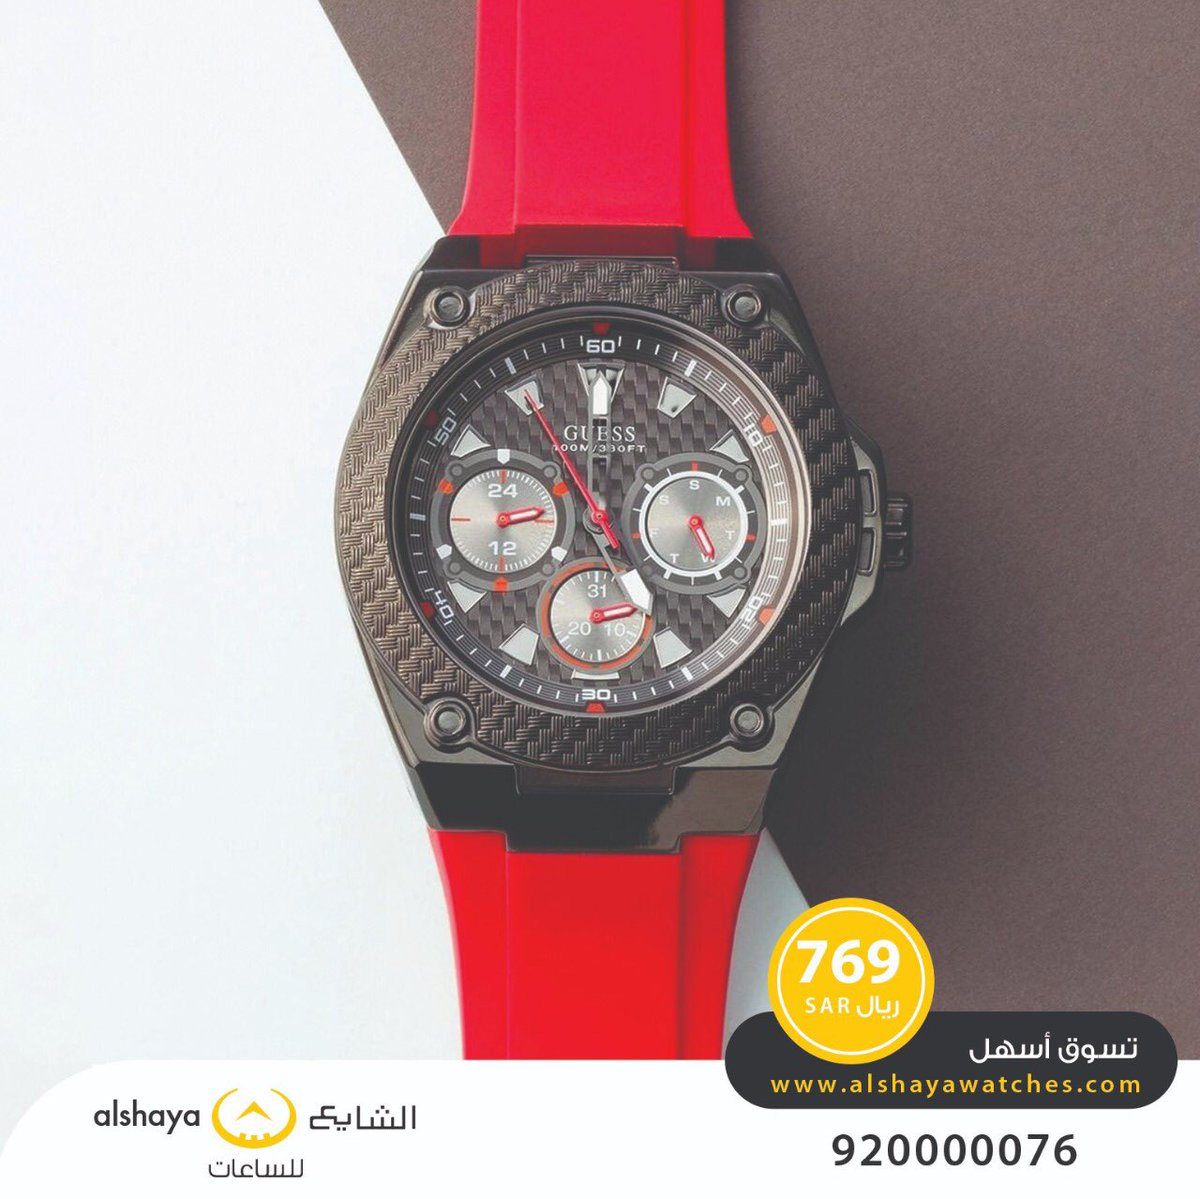 d9d43ef91 الشايع للساعات (@AlshayaWatches) | Twitter